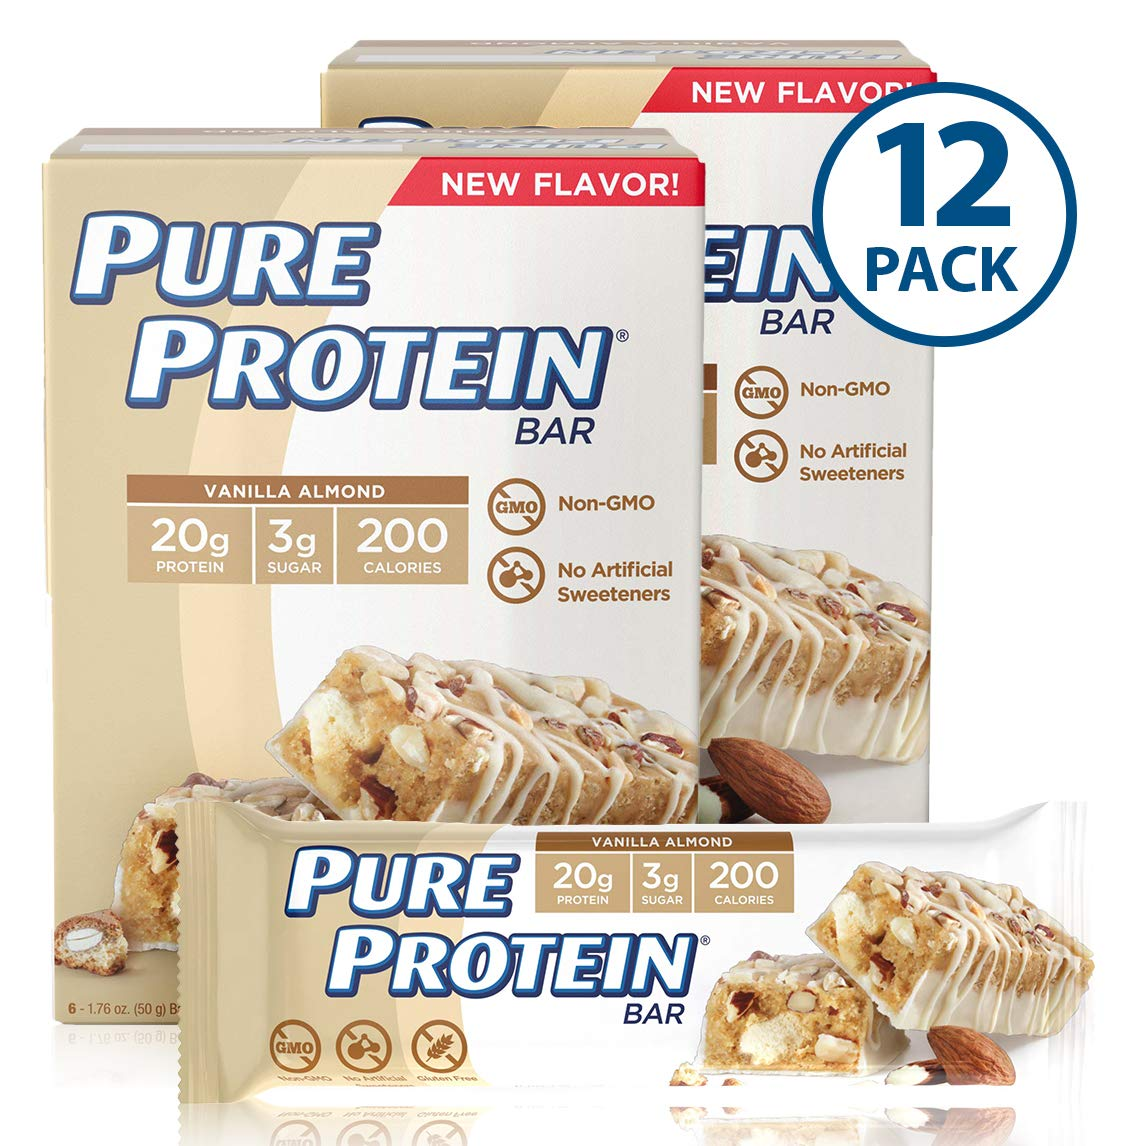 Pure Protein Bars, High Protein, Nutritious Snacks to Support Energy, Low Sugar, Gluten Free, Vanilla Almond, 1.76oz, 12 Pack